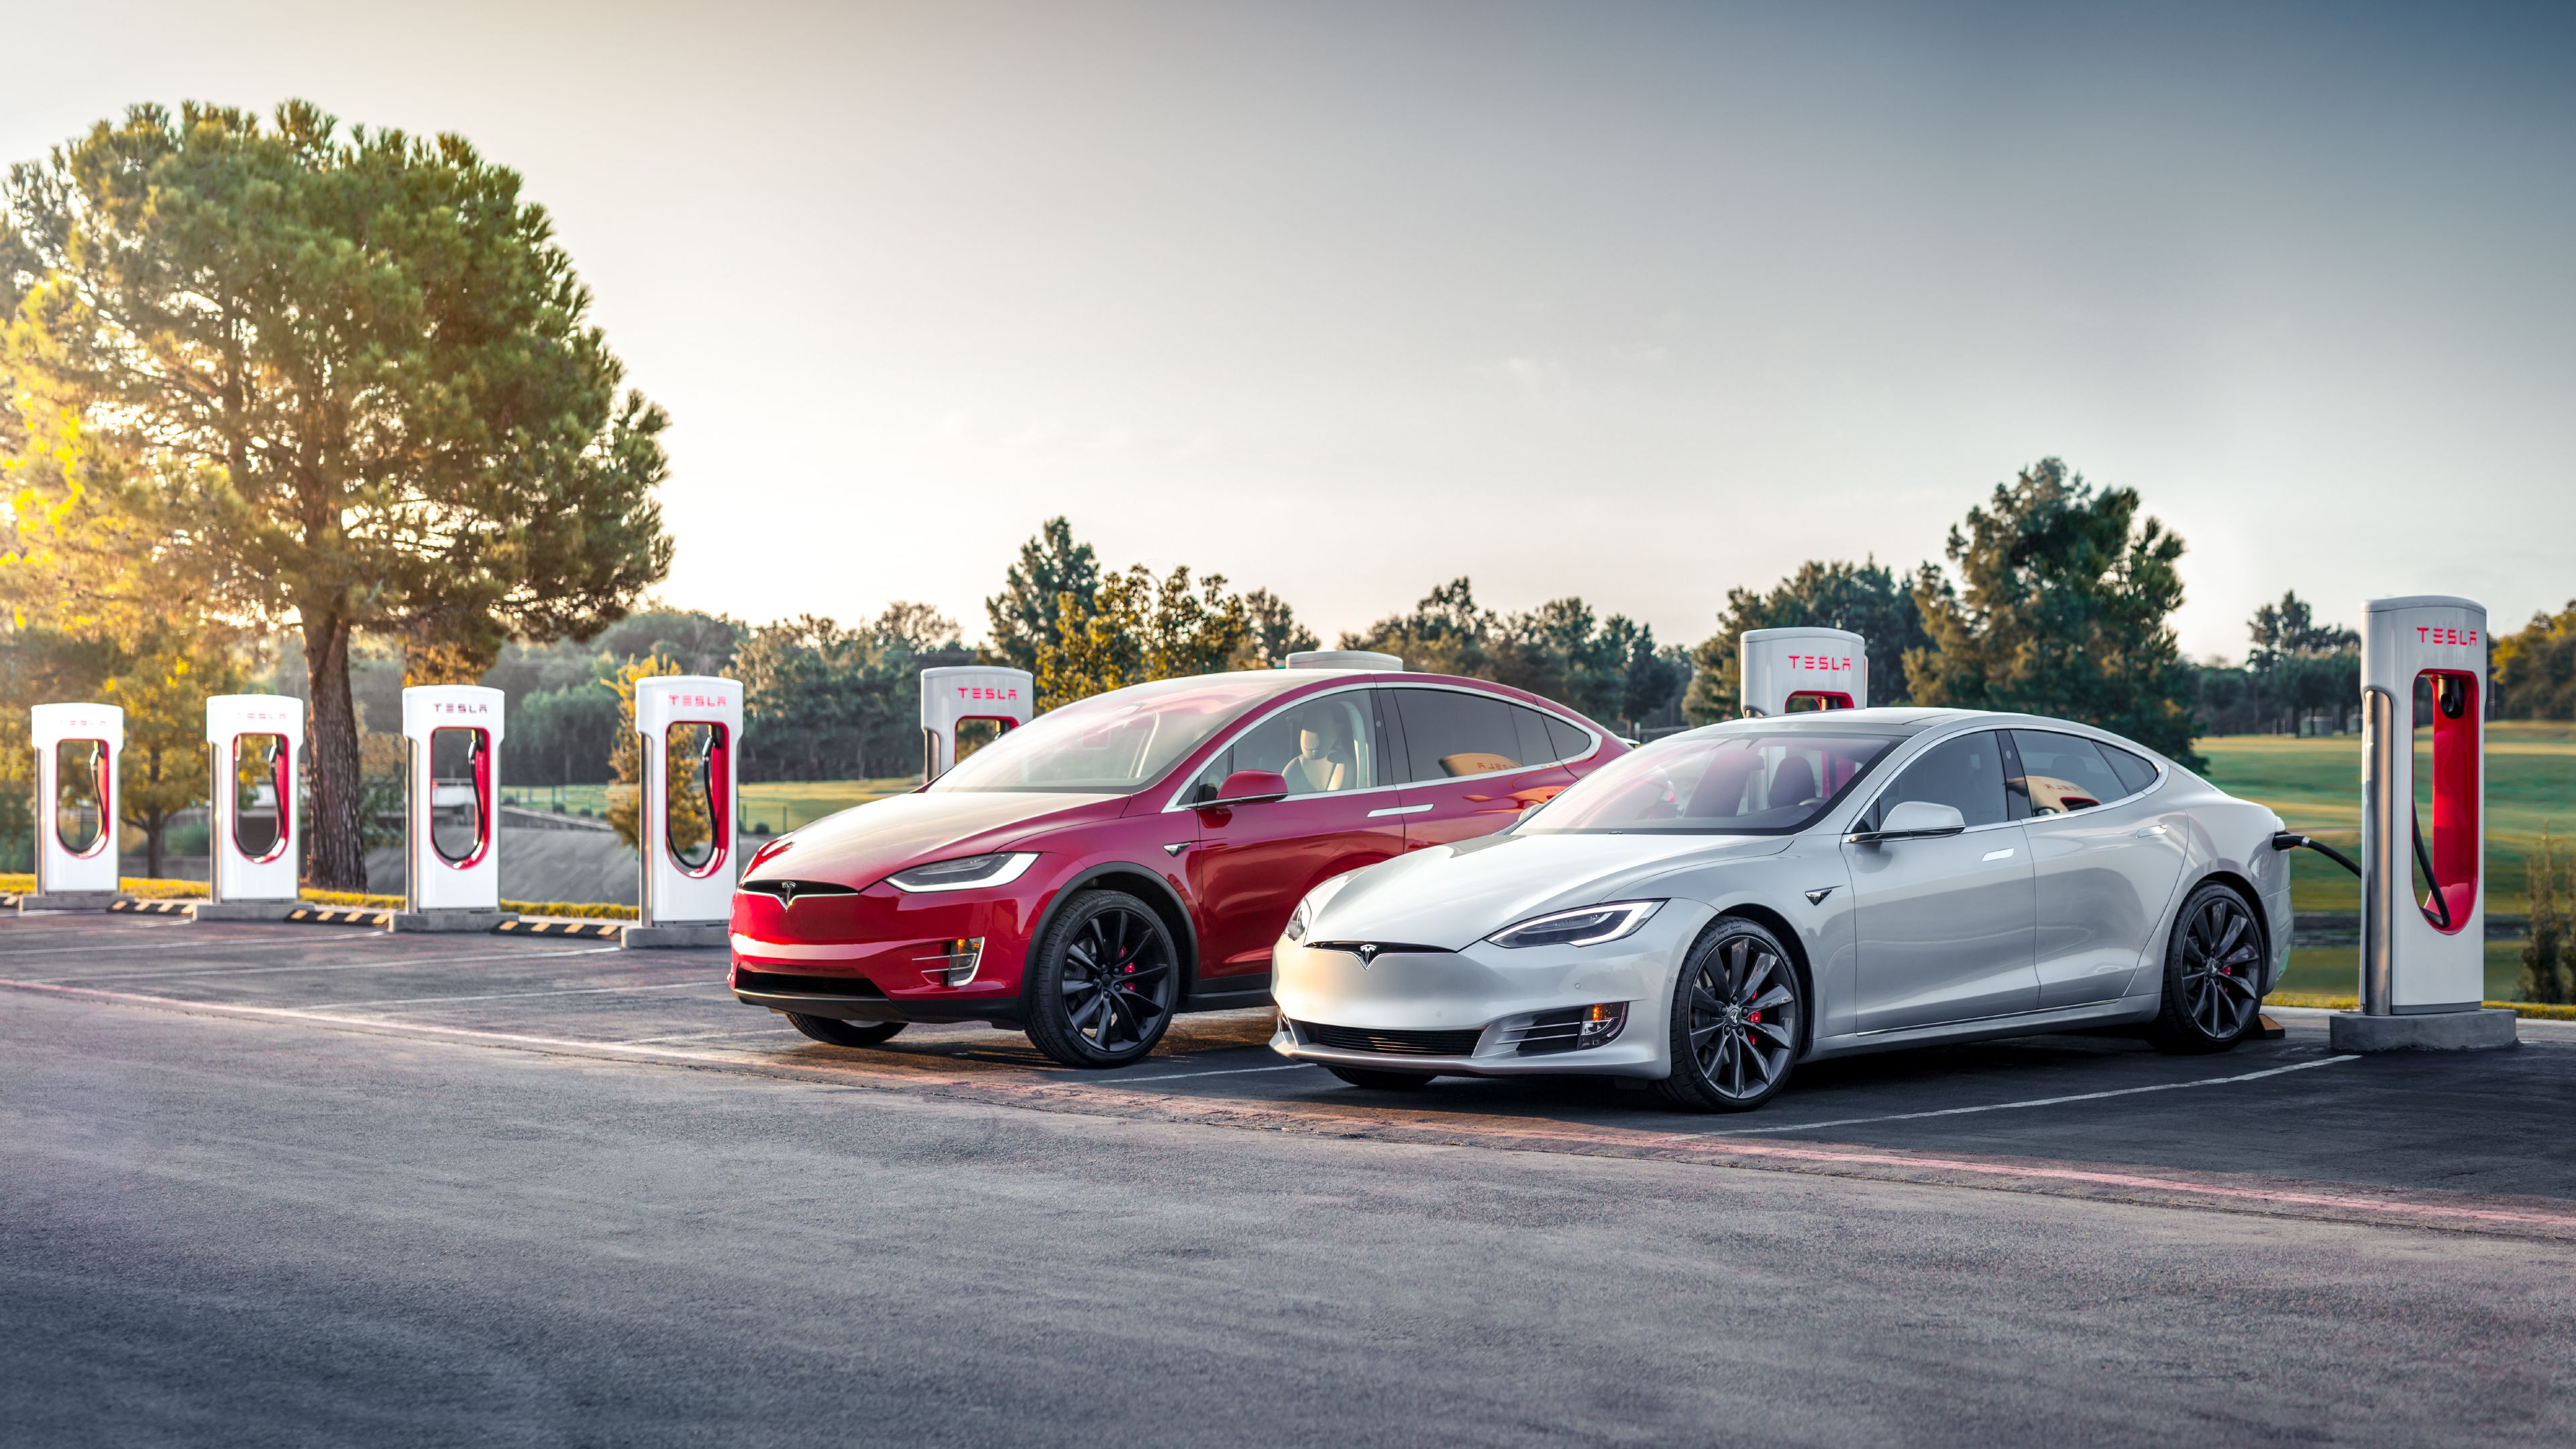 Tesla Reinstates Free Supercharging for Model S and Model X